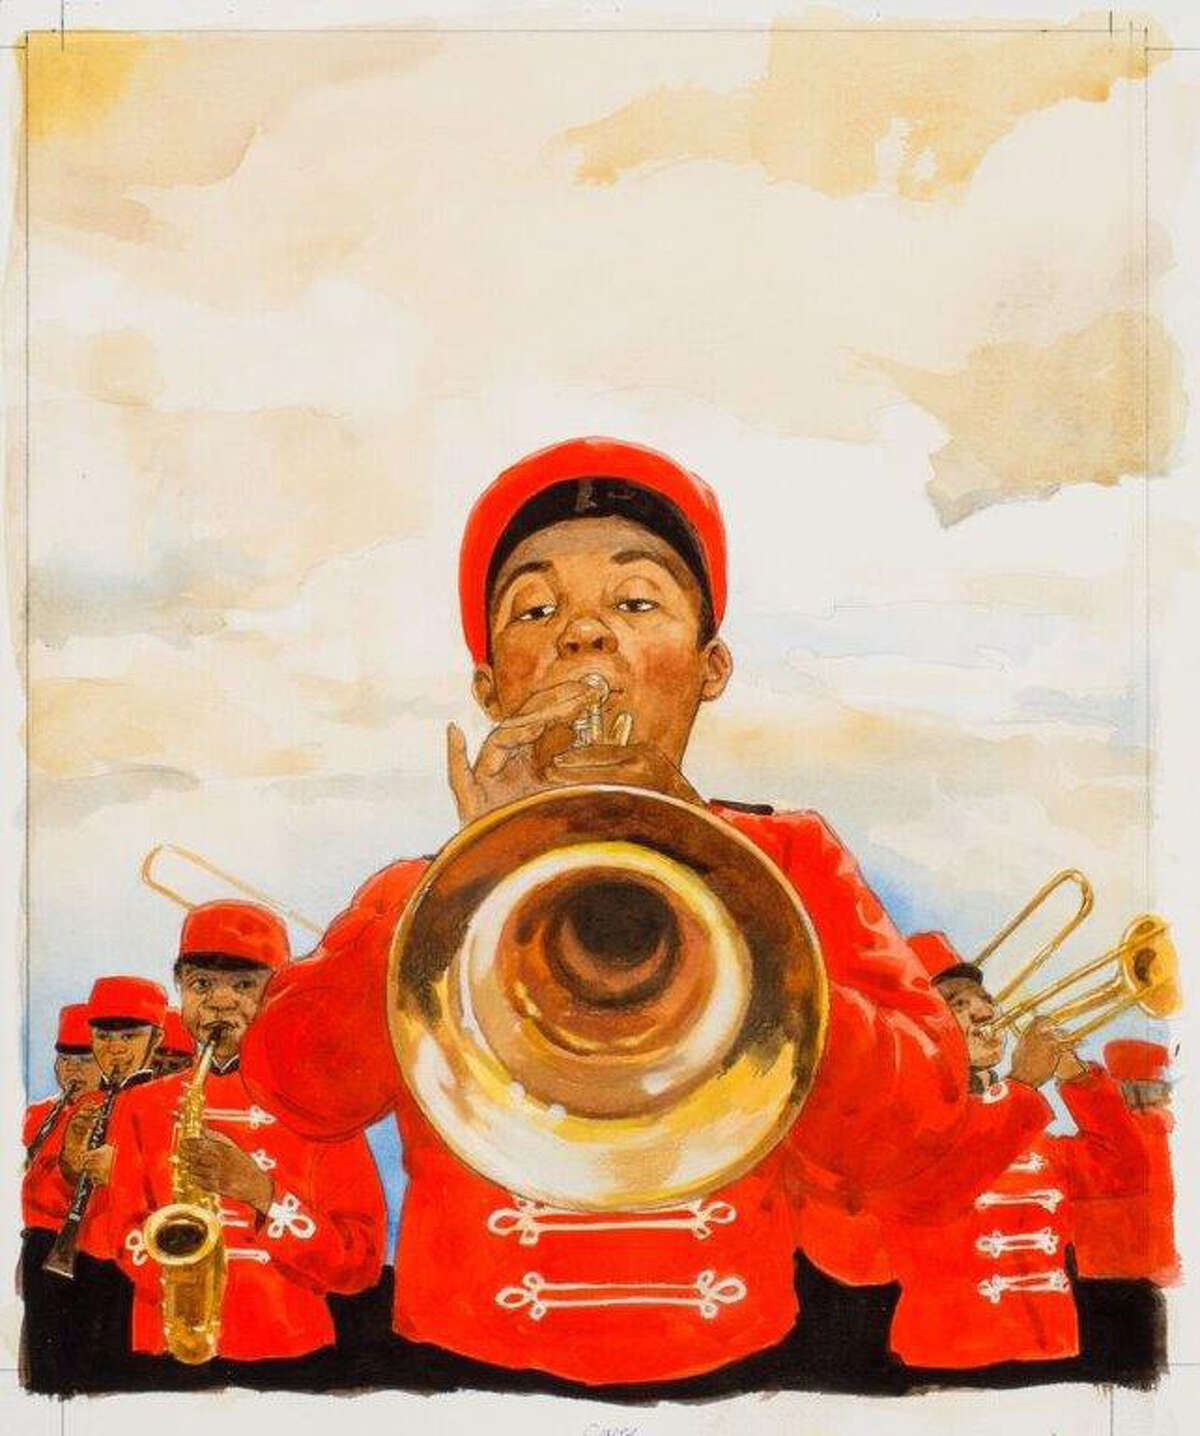 """An illustration from the book """"Just a Very Lucky So and So: The Story of Louis Armstrong"""" by James Ransome."""